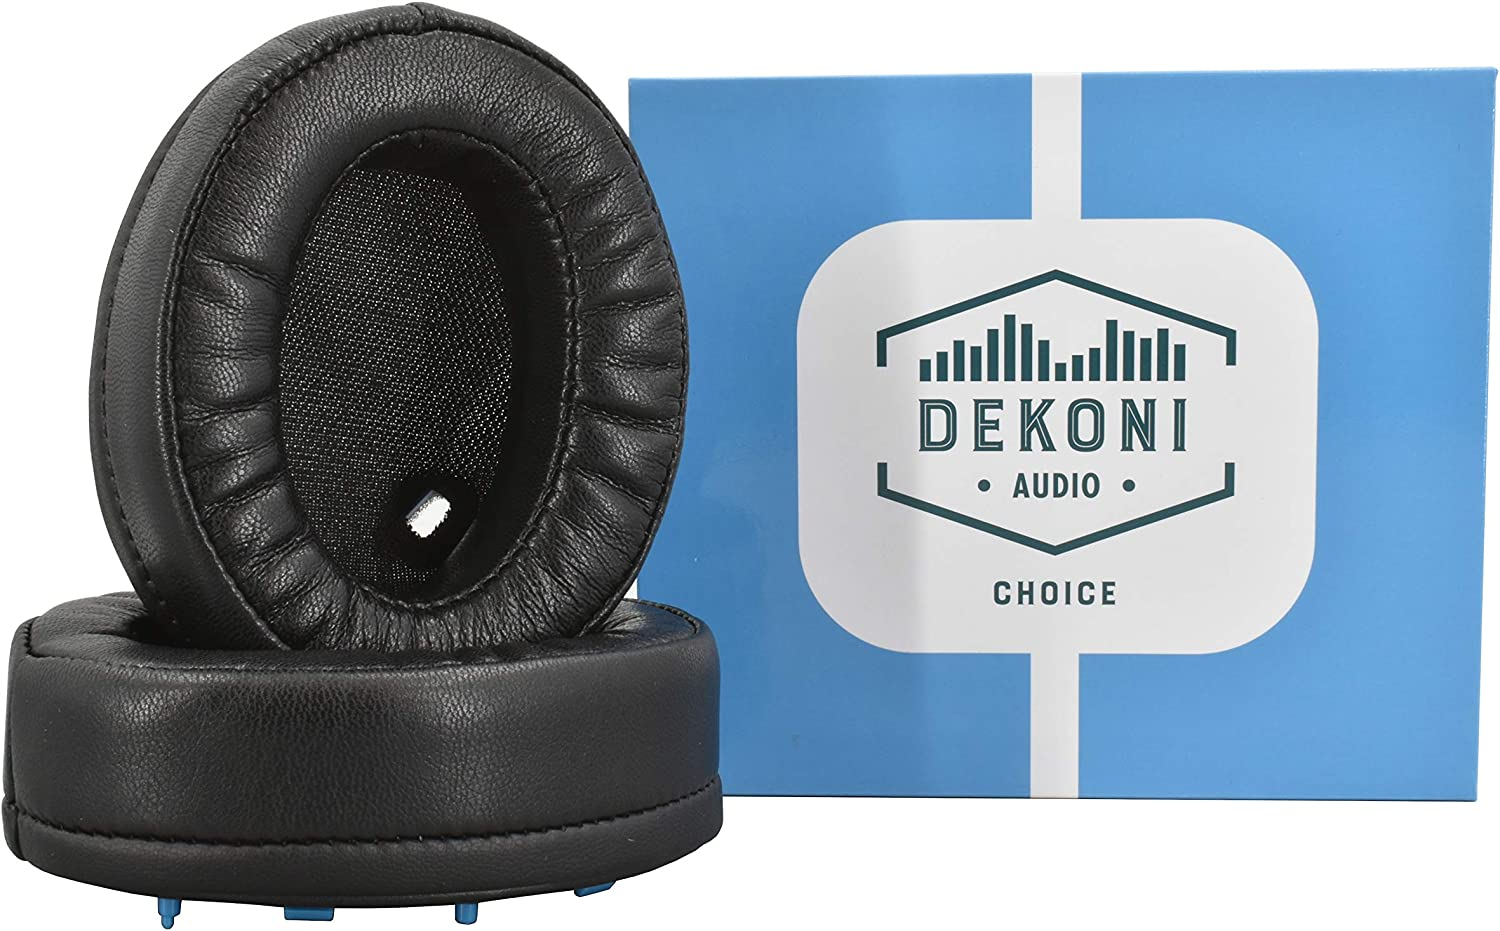 Dekoni Replacement for Sony Earpad Wireless Headphone Max 68% OFF Regular store WH-1000Xm4